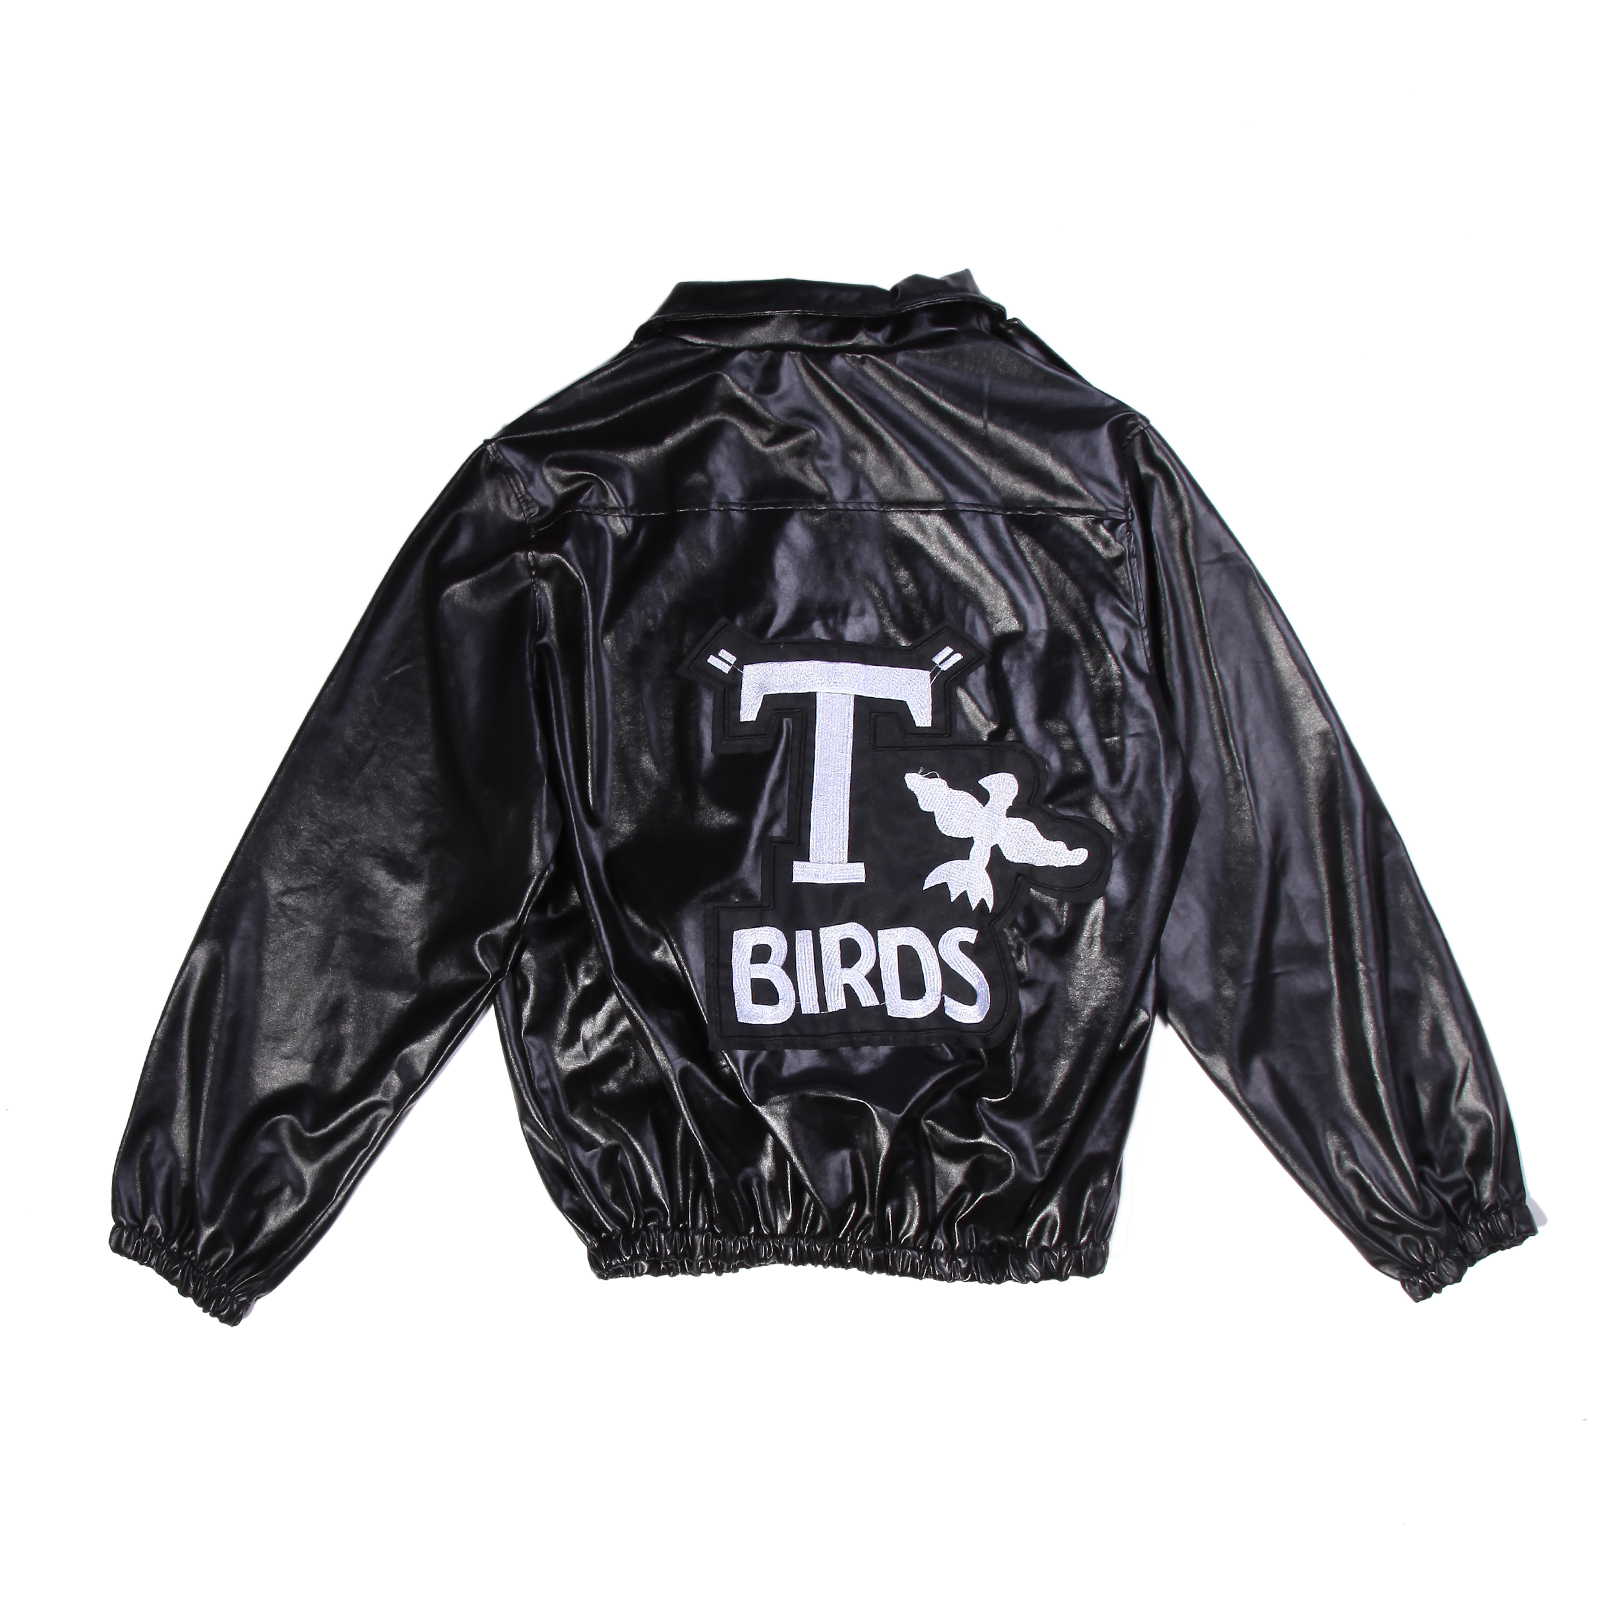 50er jahre grease t birds jacke herren kost m karneval. Black Bedroom Furniture Sets. Home Design Ideas